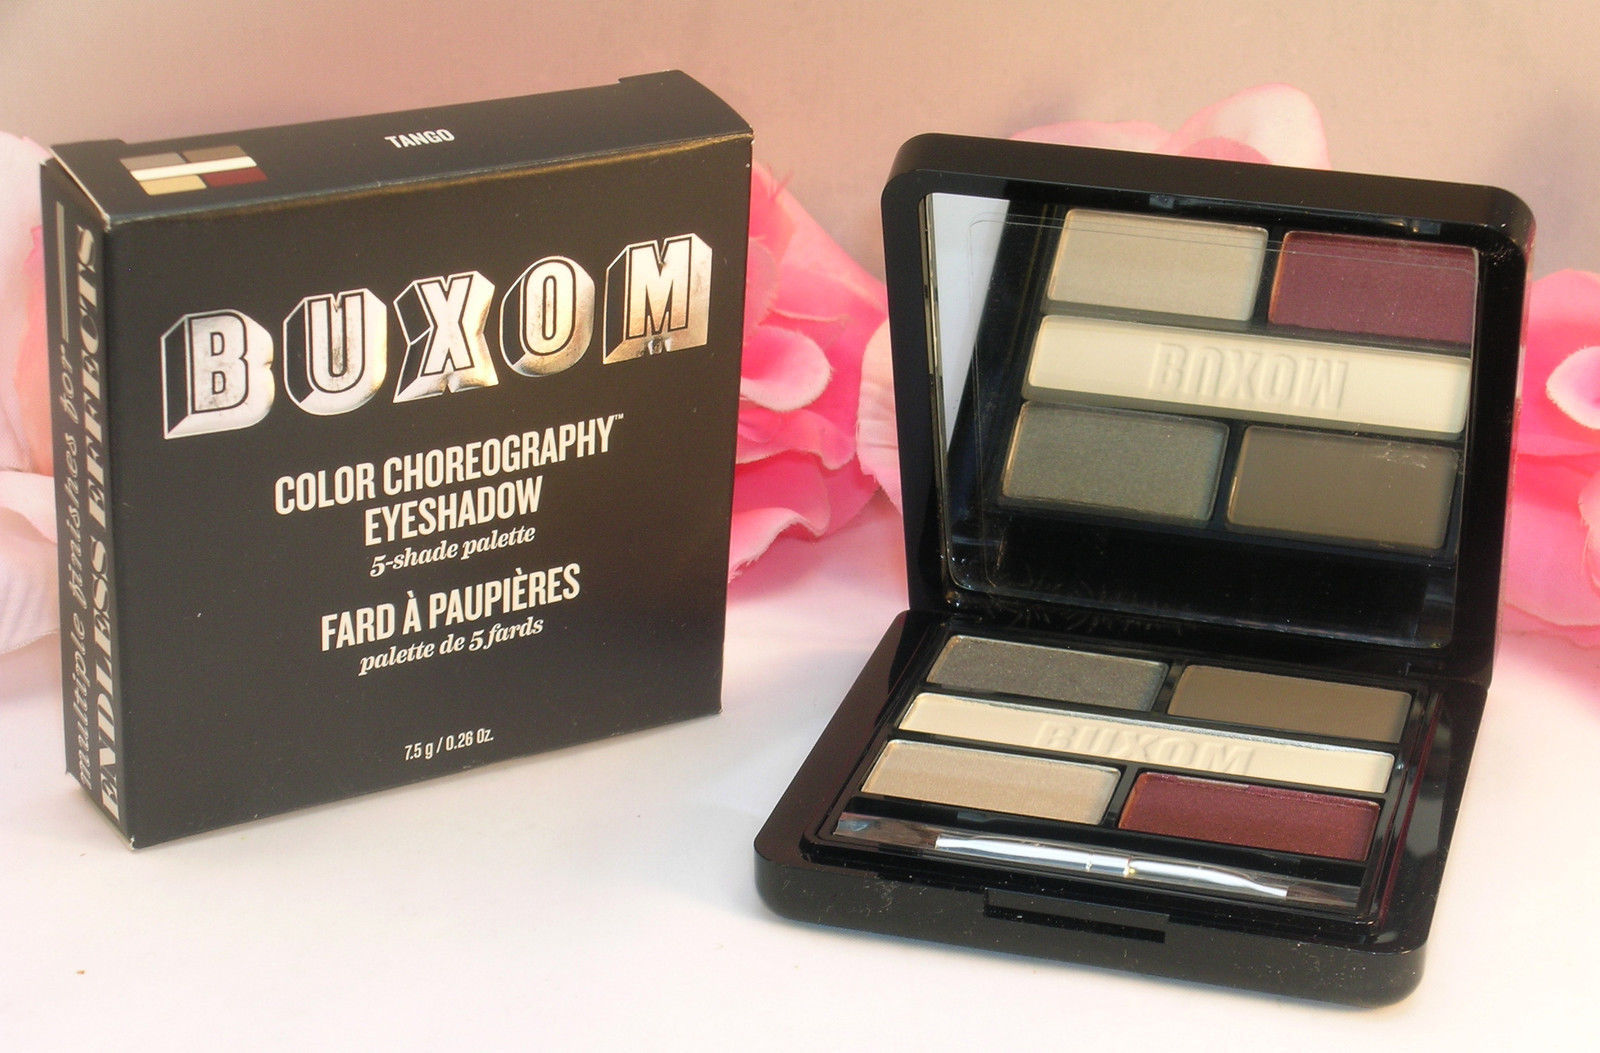 Primary image for New Buxom Eye Shadow Color Choreography 5 Shade Pallette Tango Grey Tan